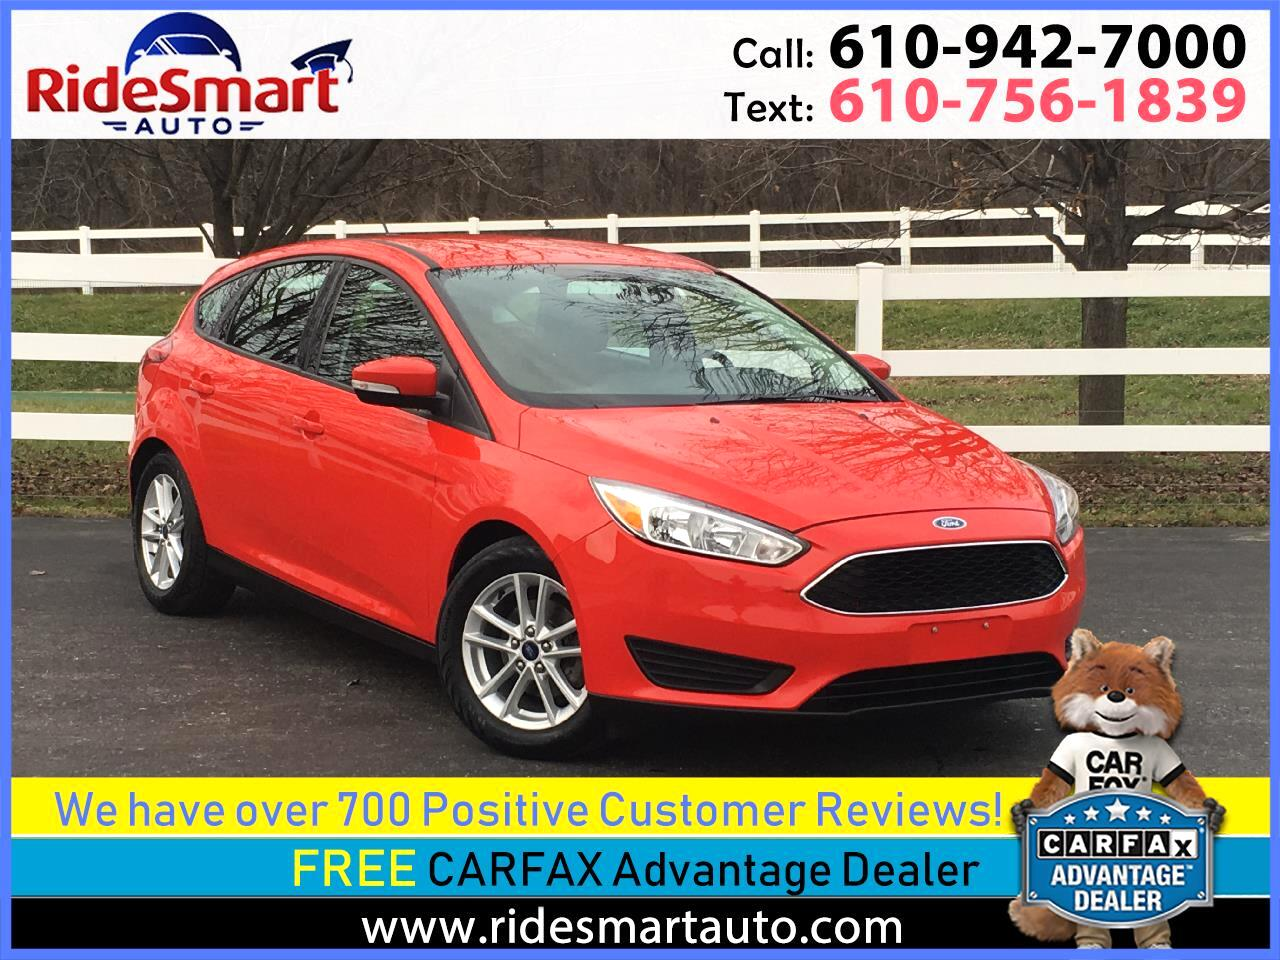 2016 Ford Focus 5 Door Hatchback SE